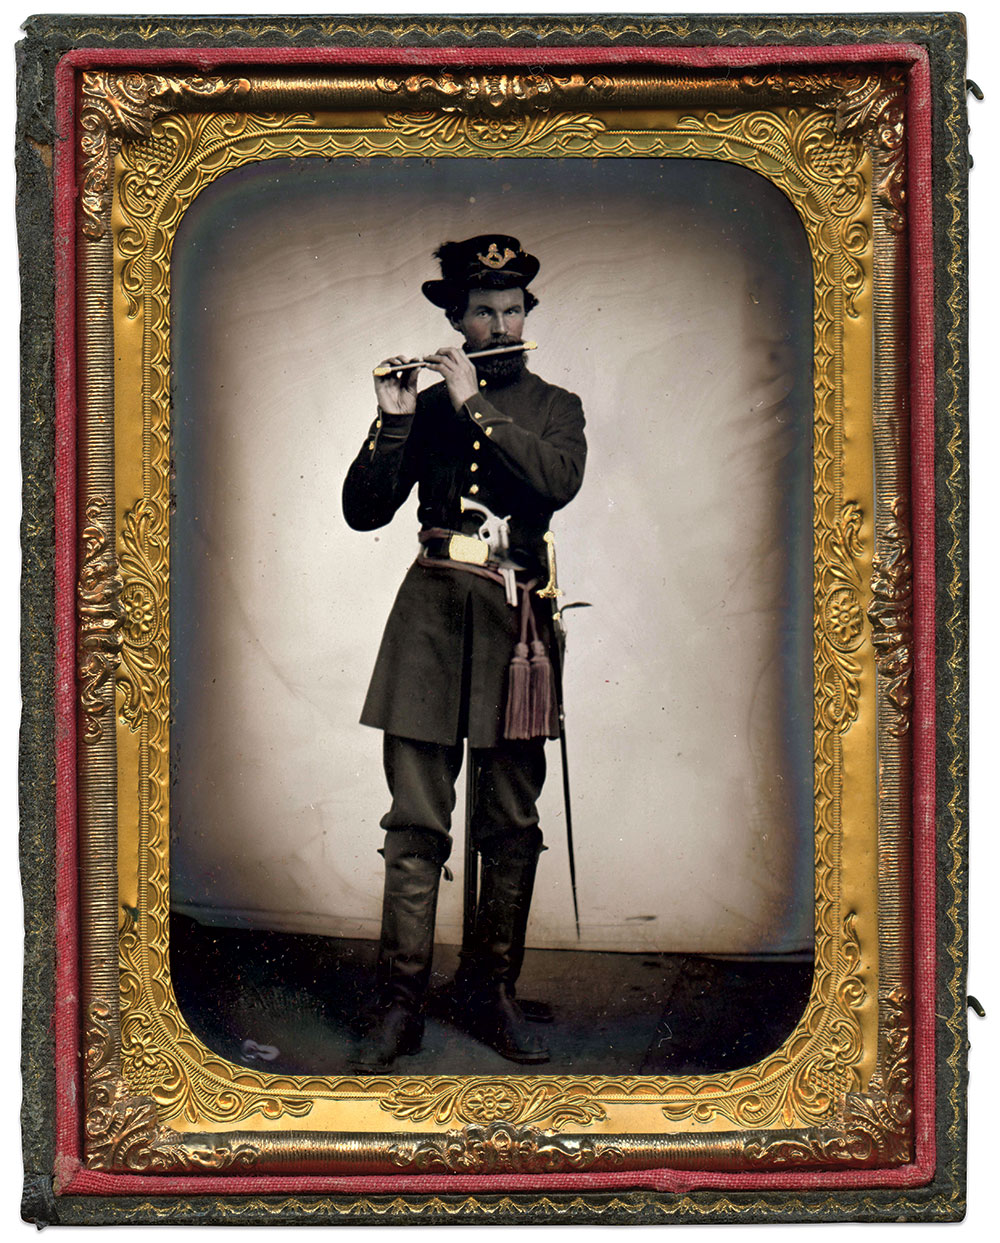 Quarter-plate tintype by an anonymous photographer. Rick Brown Collection of American Photography.